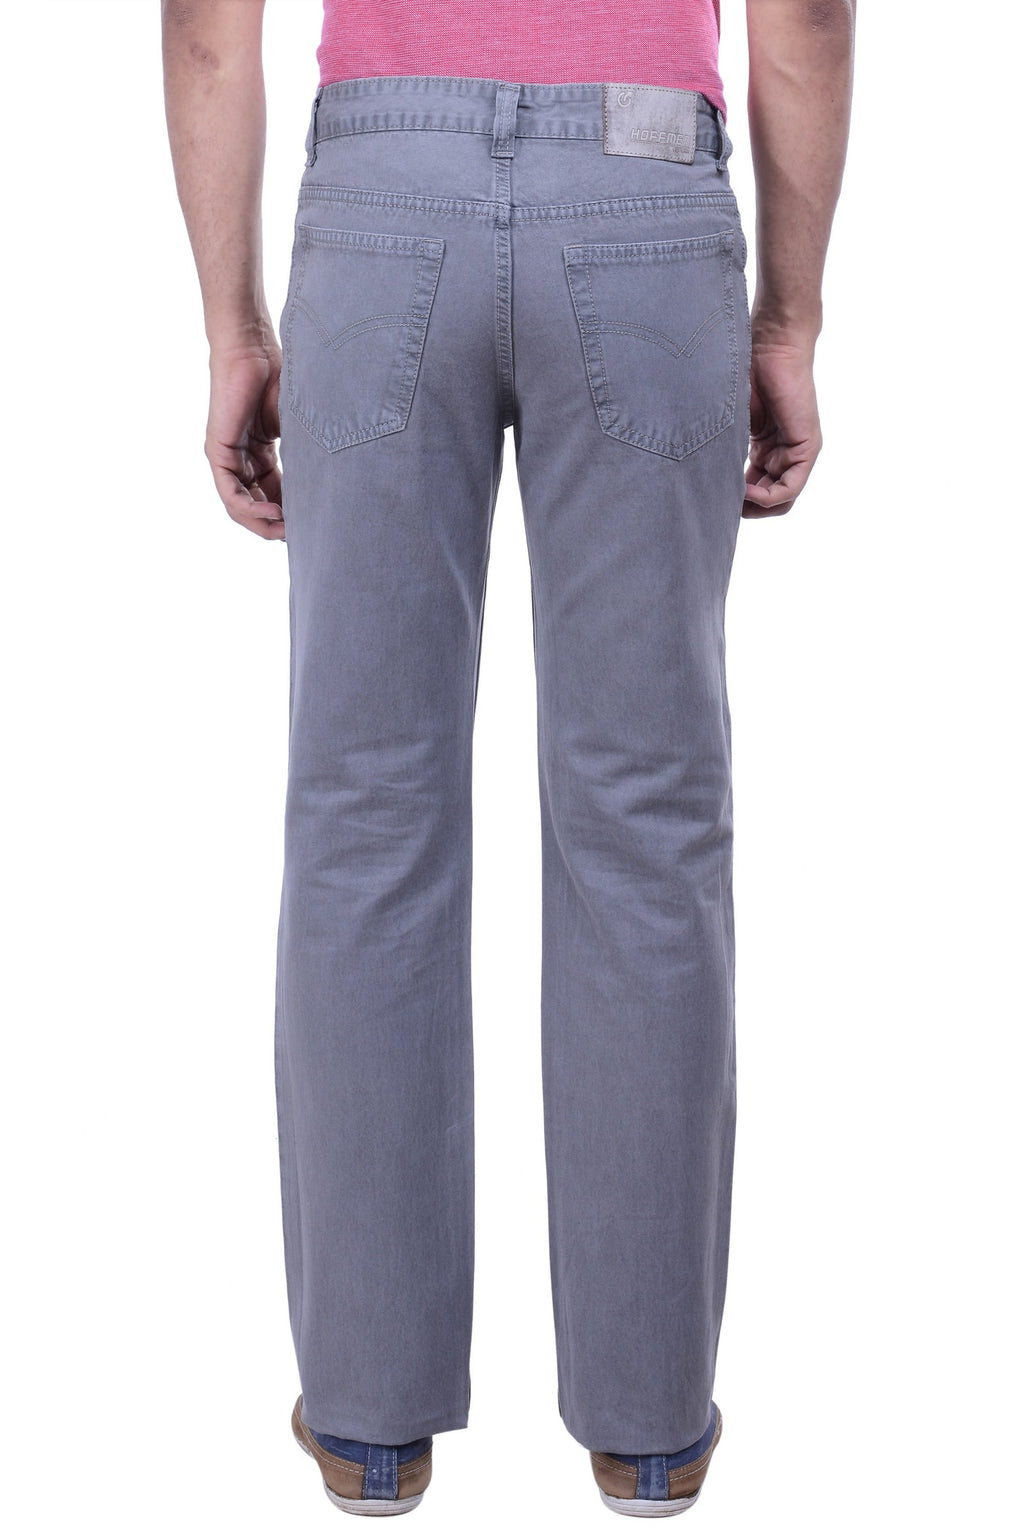 Moon Rock Cowboy Silky Denim SD2118